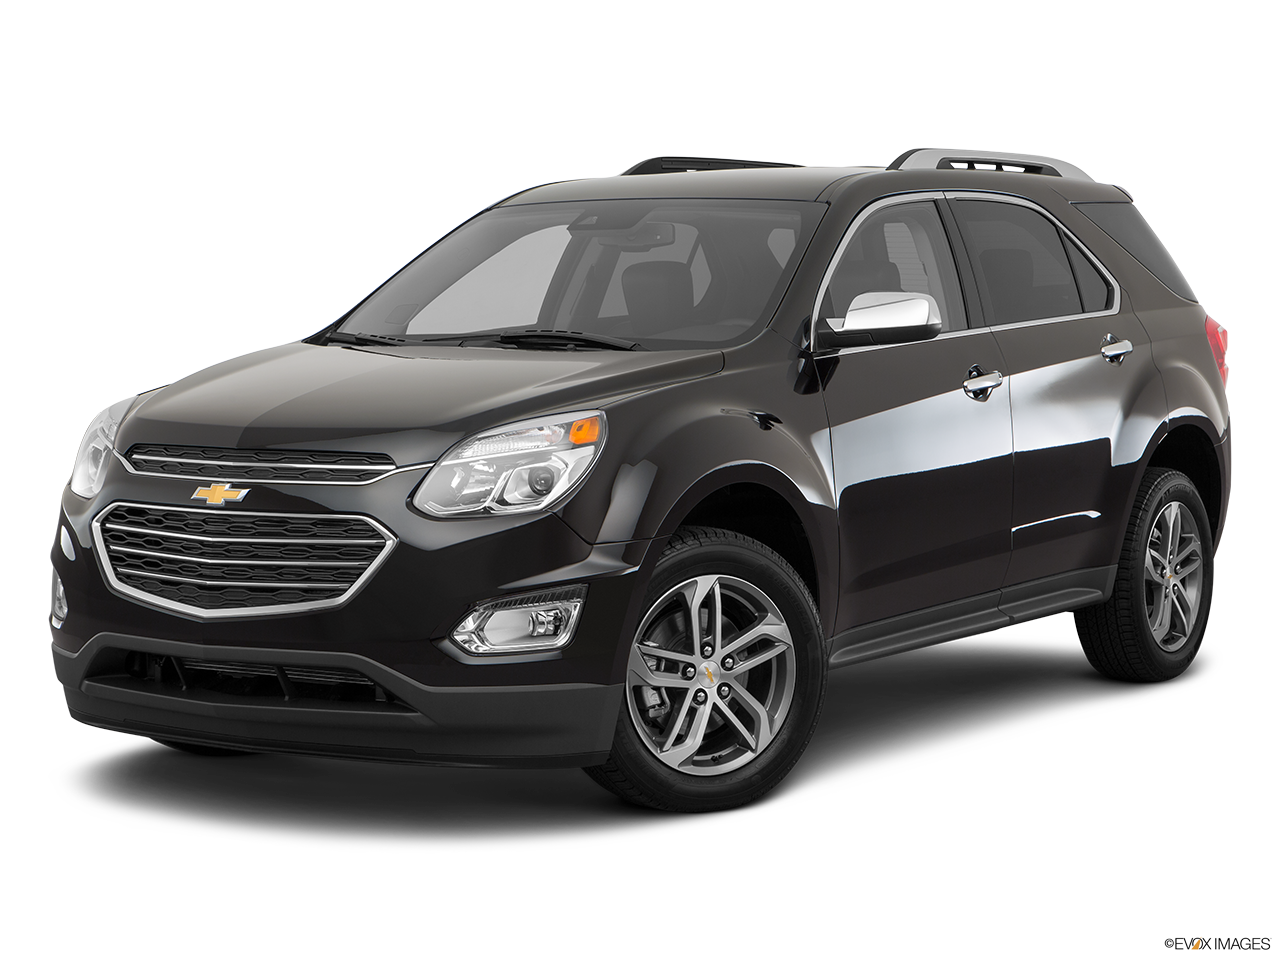 2017 chevy equinox albany ny depaula chevrolet. Black Bedroom Furniture Sets. Home Design Ideas